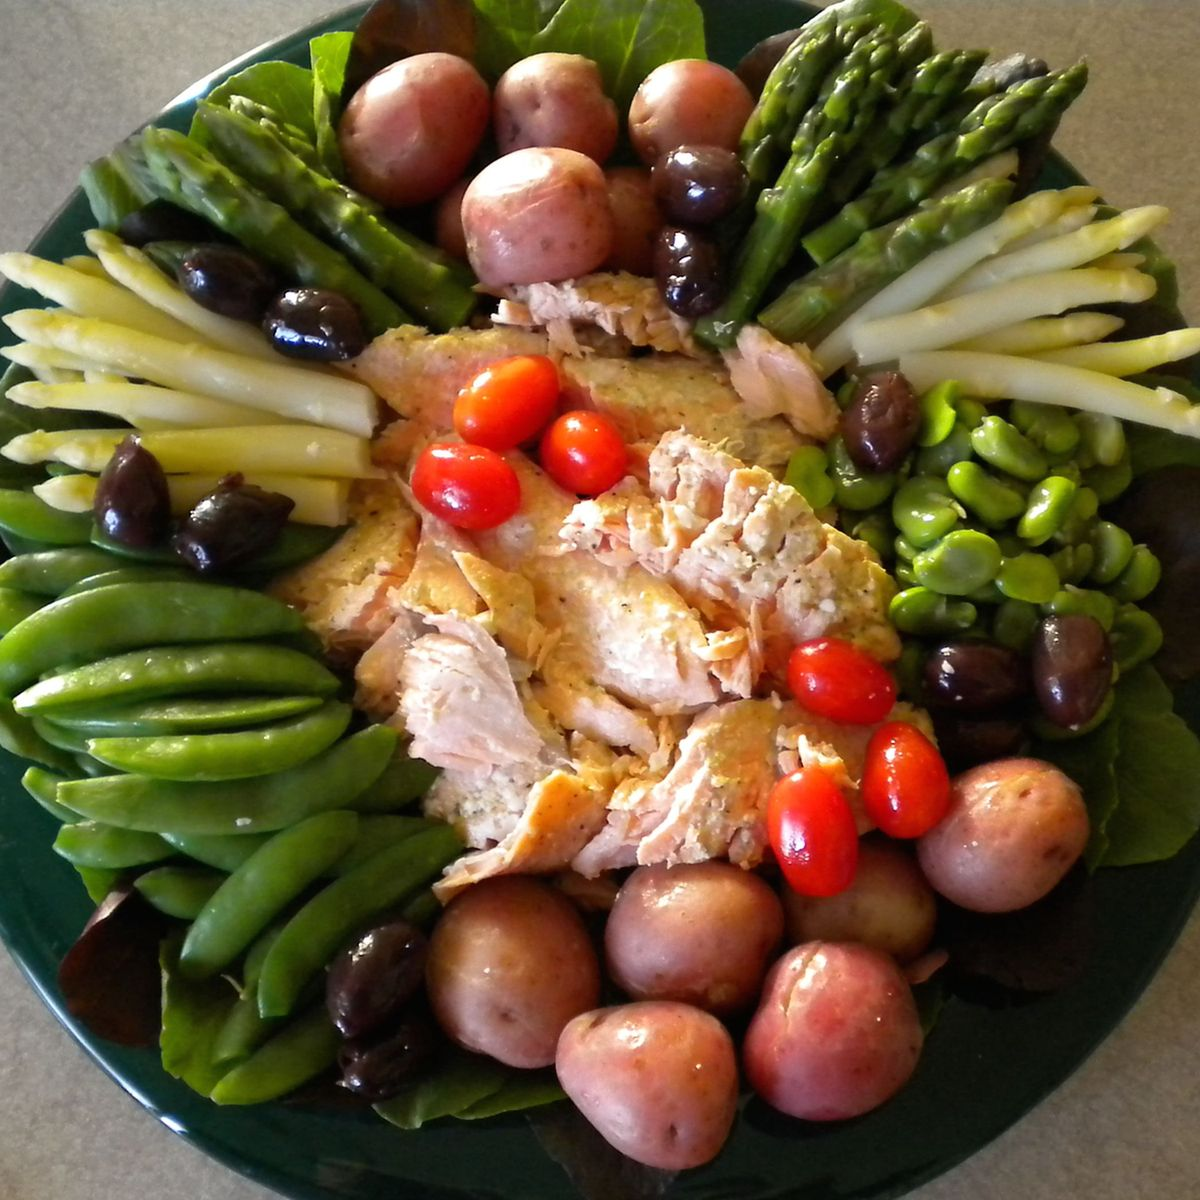 Spring Vegetable And Salmon Nicoise Platter Recipe On Food52